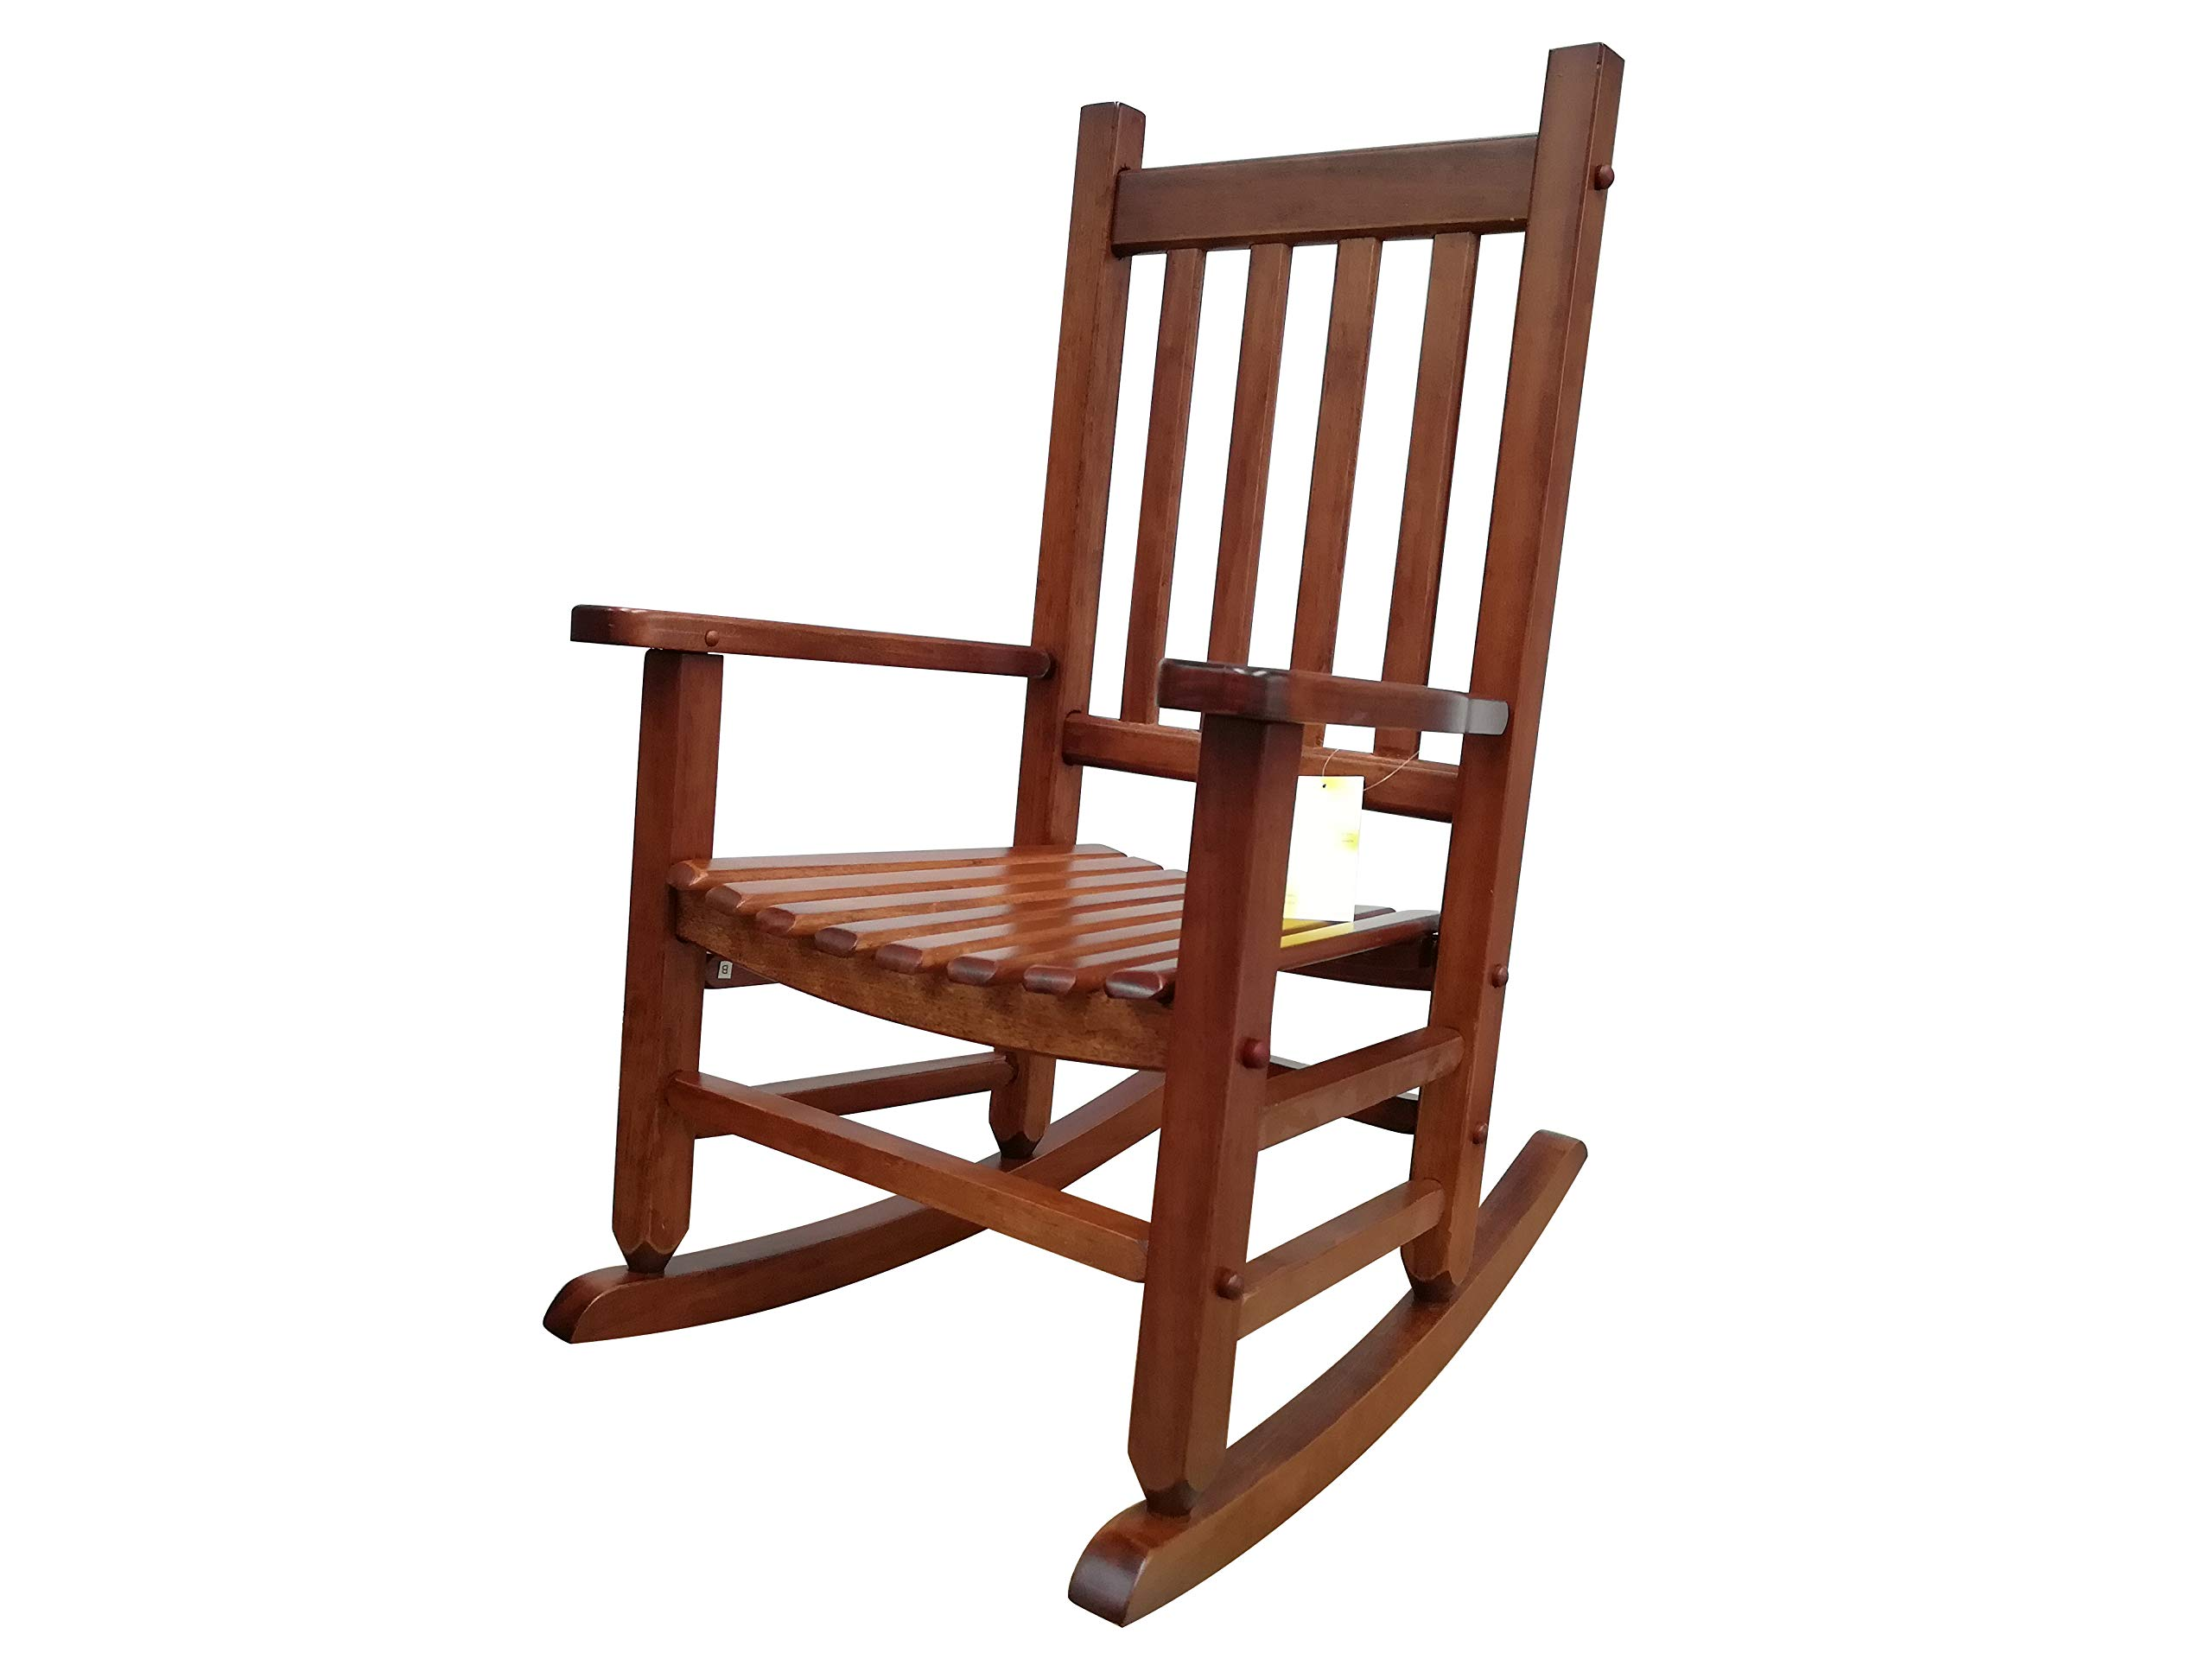 Rockingrocker - K086NT Durable Natural Child's Wooden Rocking Chair/Porch Rocker - Indoor or Outdoor - Suitable for 4-8 Years Old